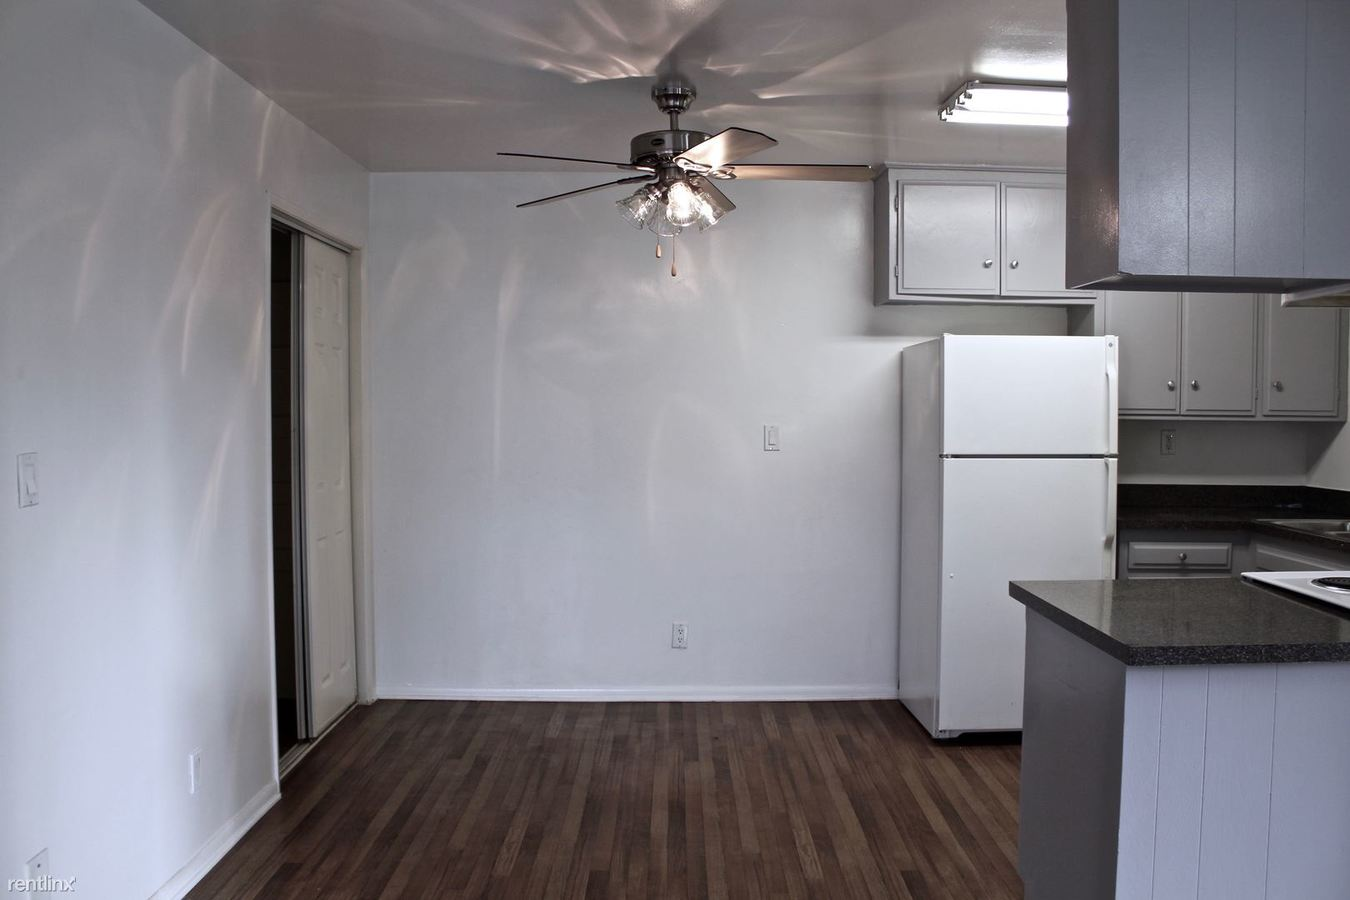 2 Bedrooms 2 Bathrooms Apartment for rent at 10770 Lawler St. in Los Angeles, CA